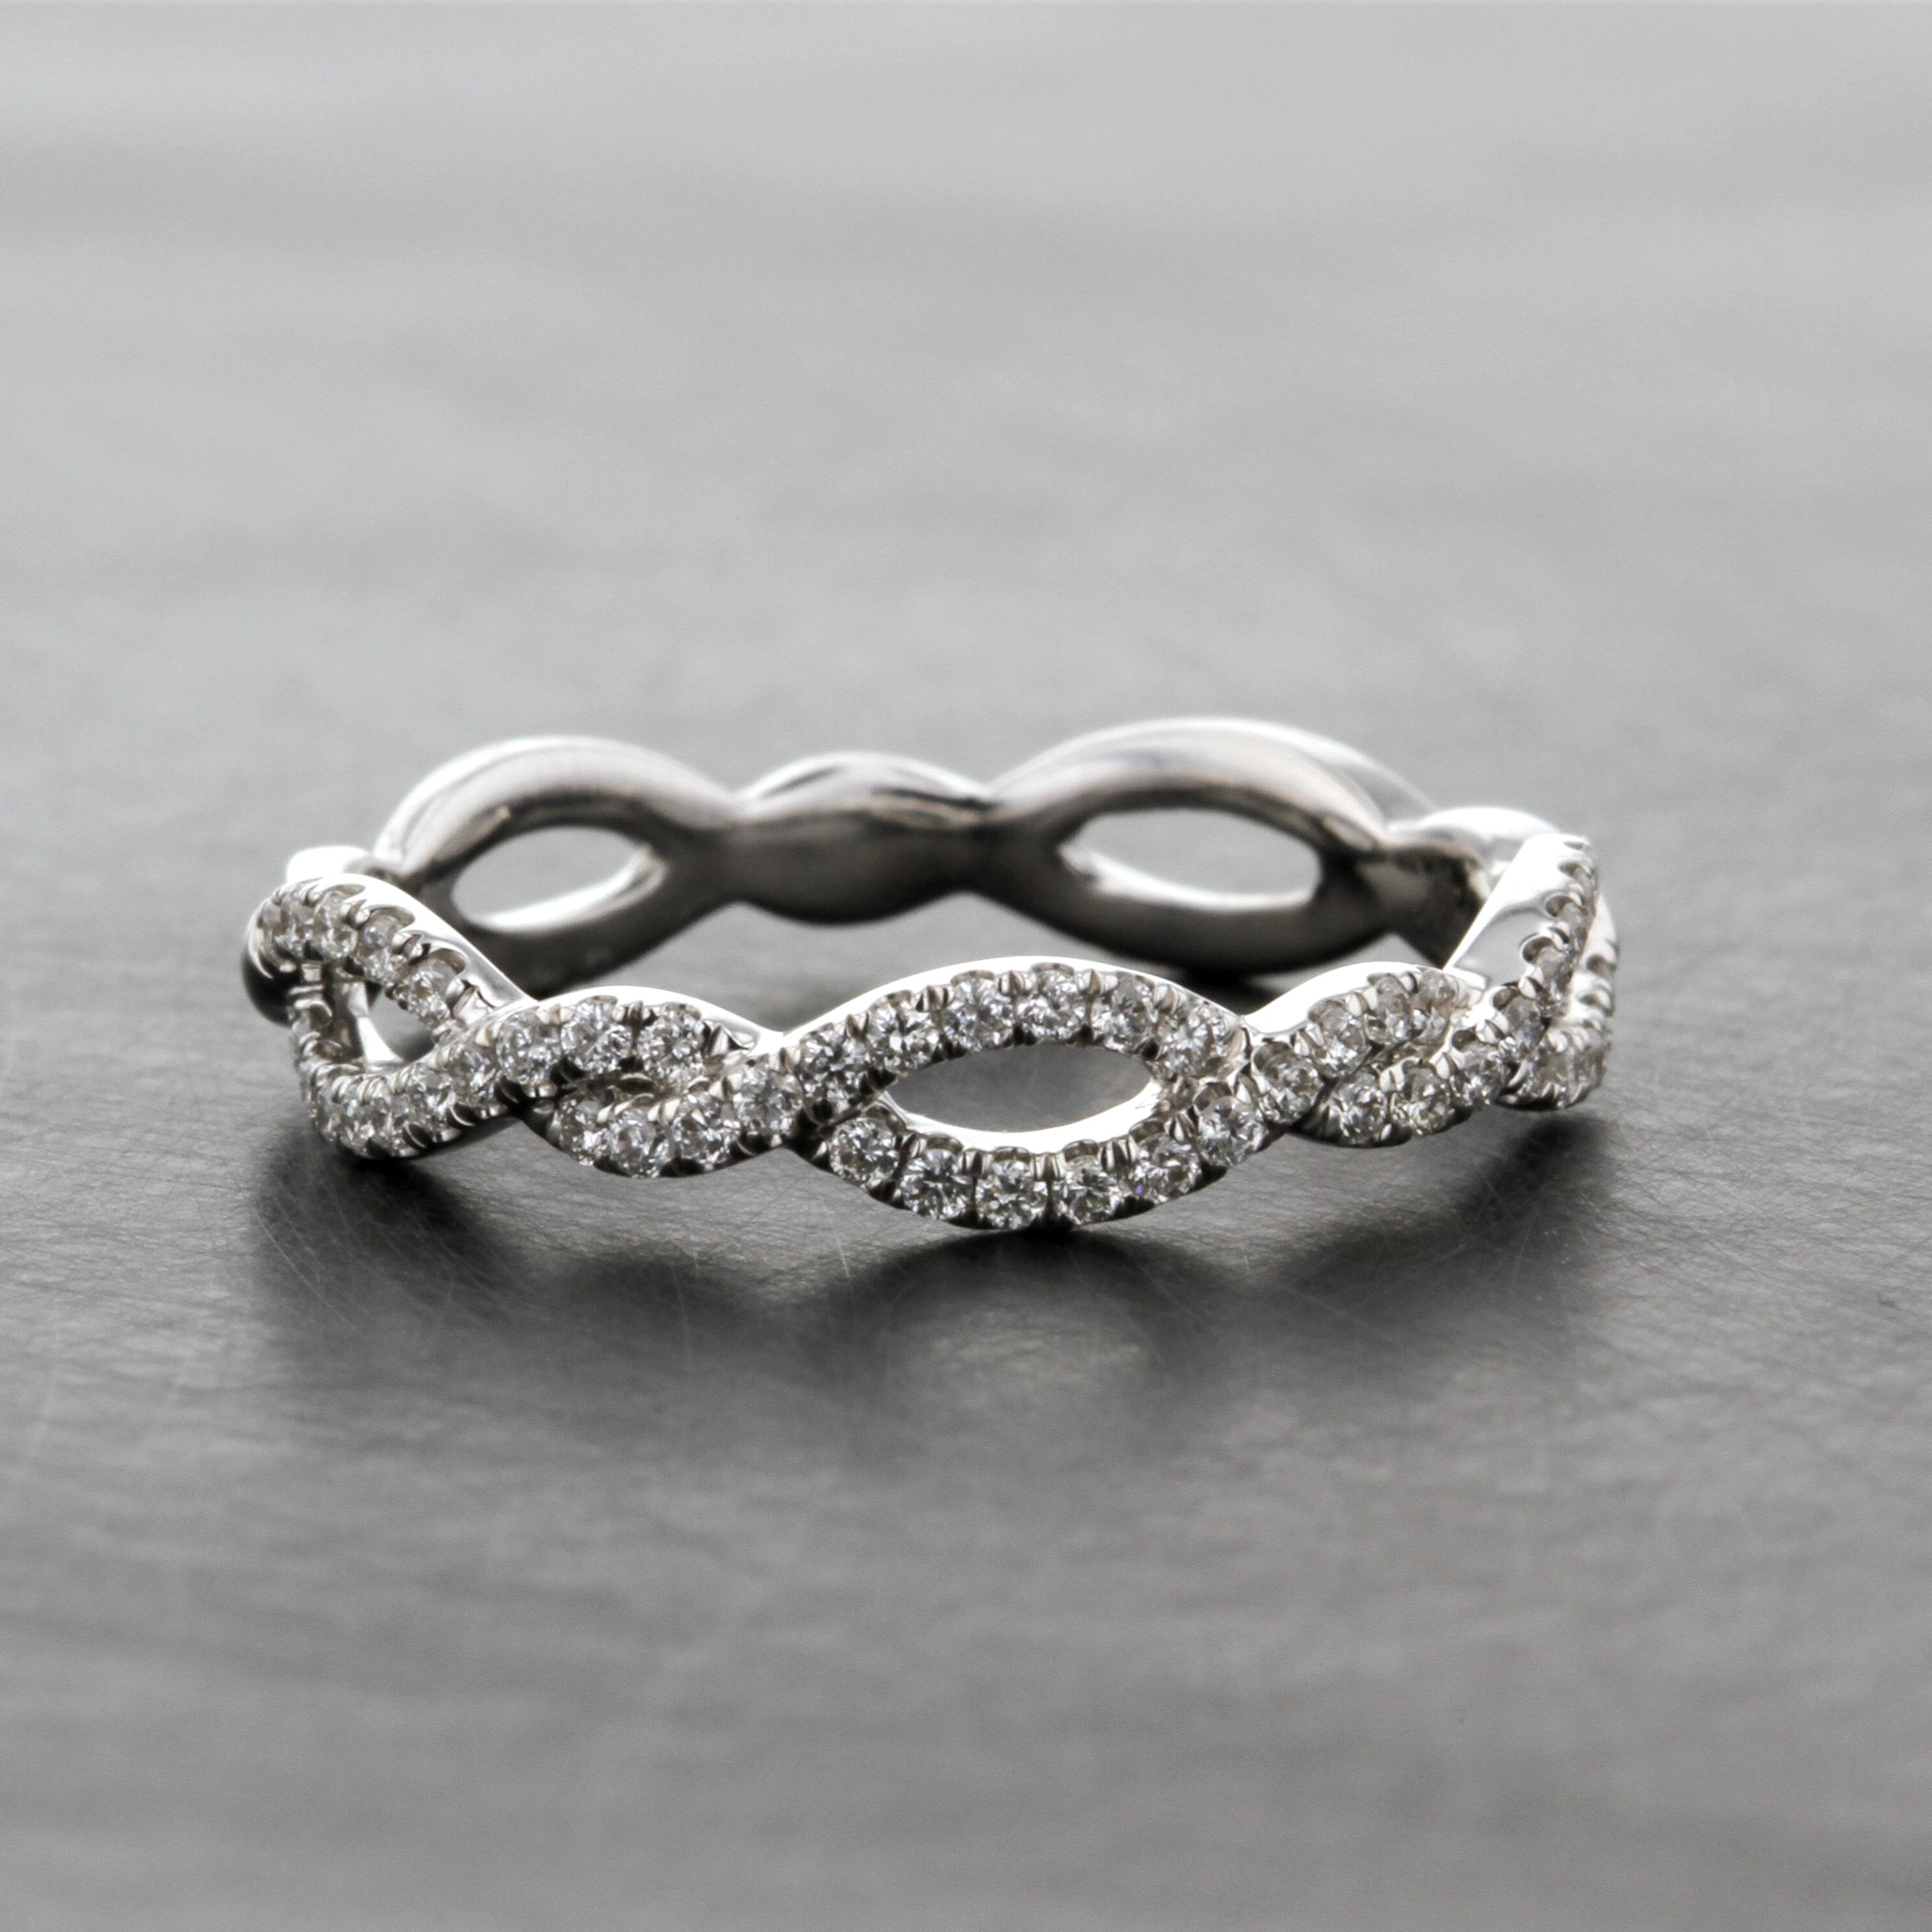 Infinity Wedding Band.Infinity Twist Diamond Intertwined Wedding Band Kizer Cummings Jewelers